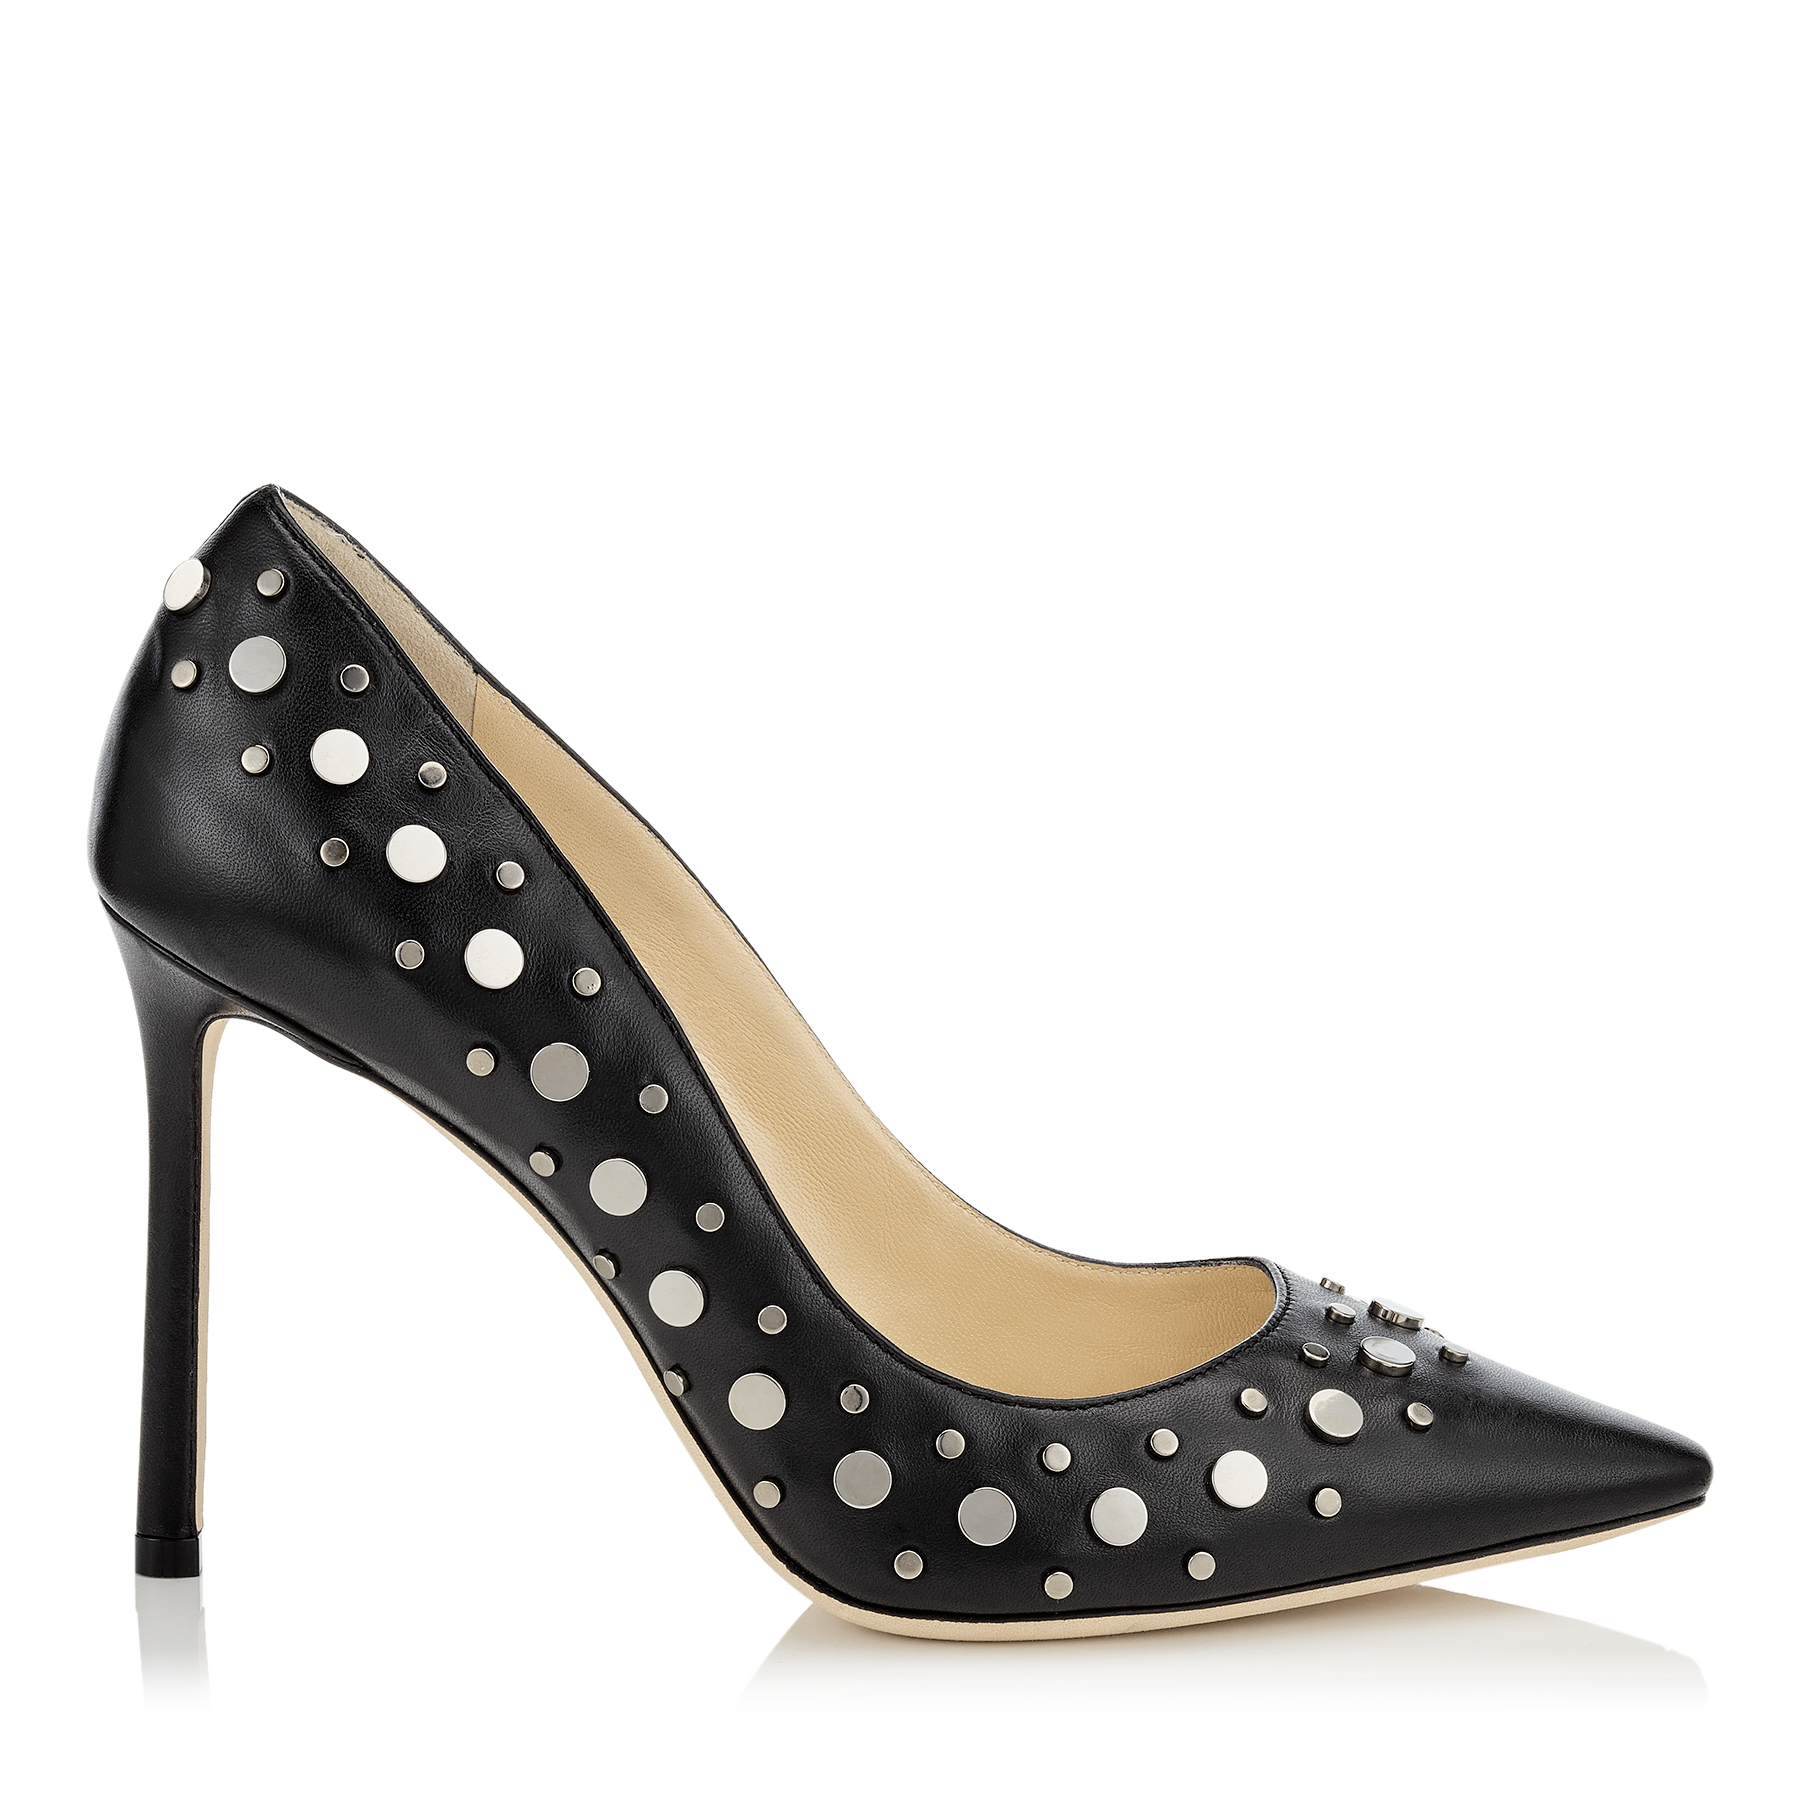 ROMY 100 Black Nappa Pointy Toe Pumps with Anthracite Studs by Jimmy Choo